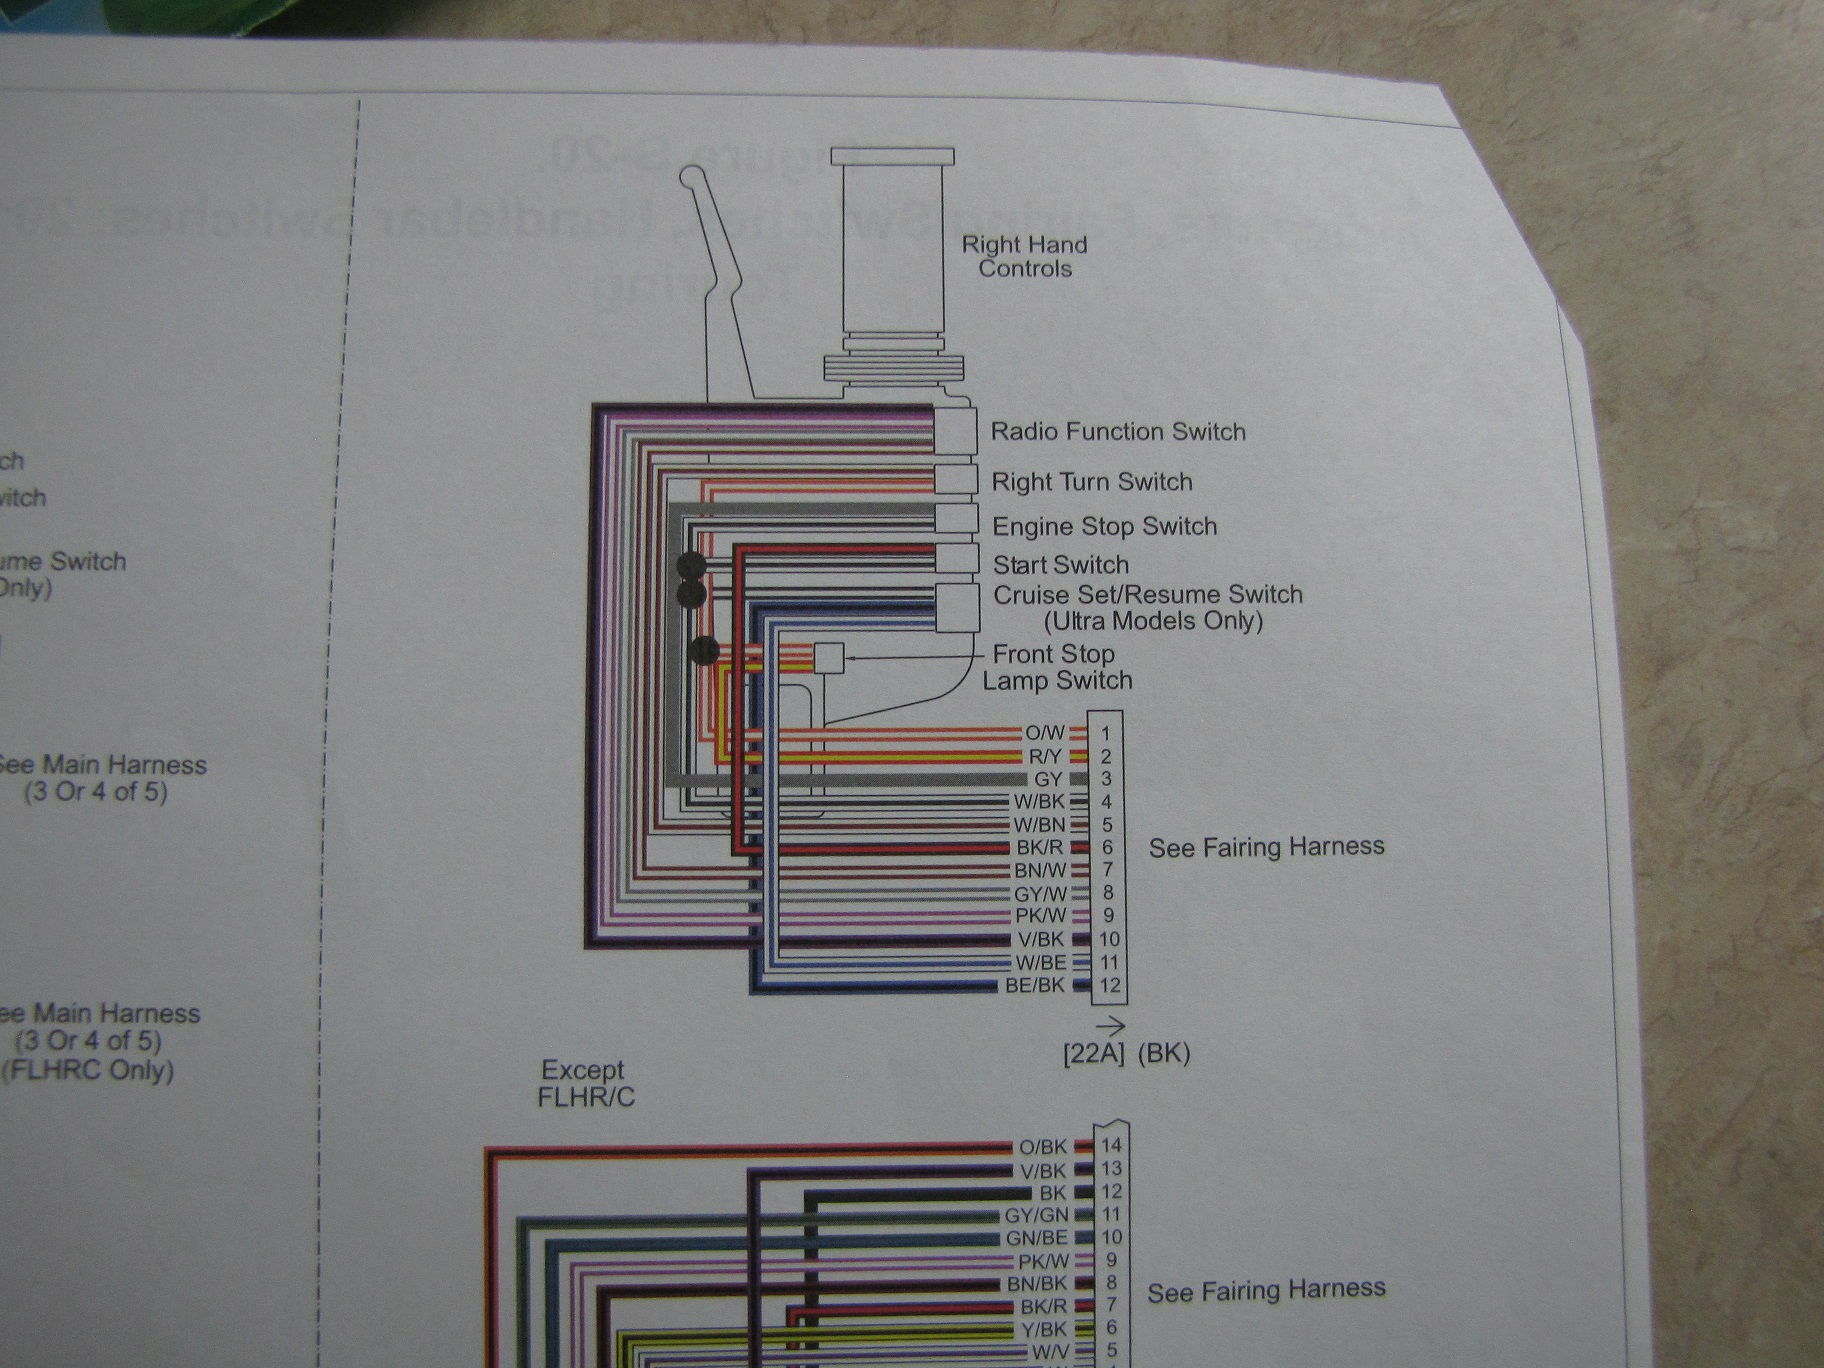 80 img_7129_dfe821bf4522af92b0010ab47946e39a68f87097 wiring diagram 2013 street glide harley davidson forums harley davidson cruise control wiring diagram at webbmarketing.co